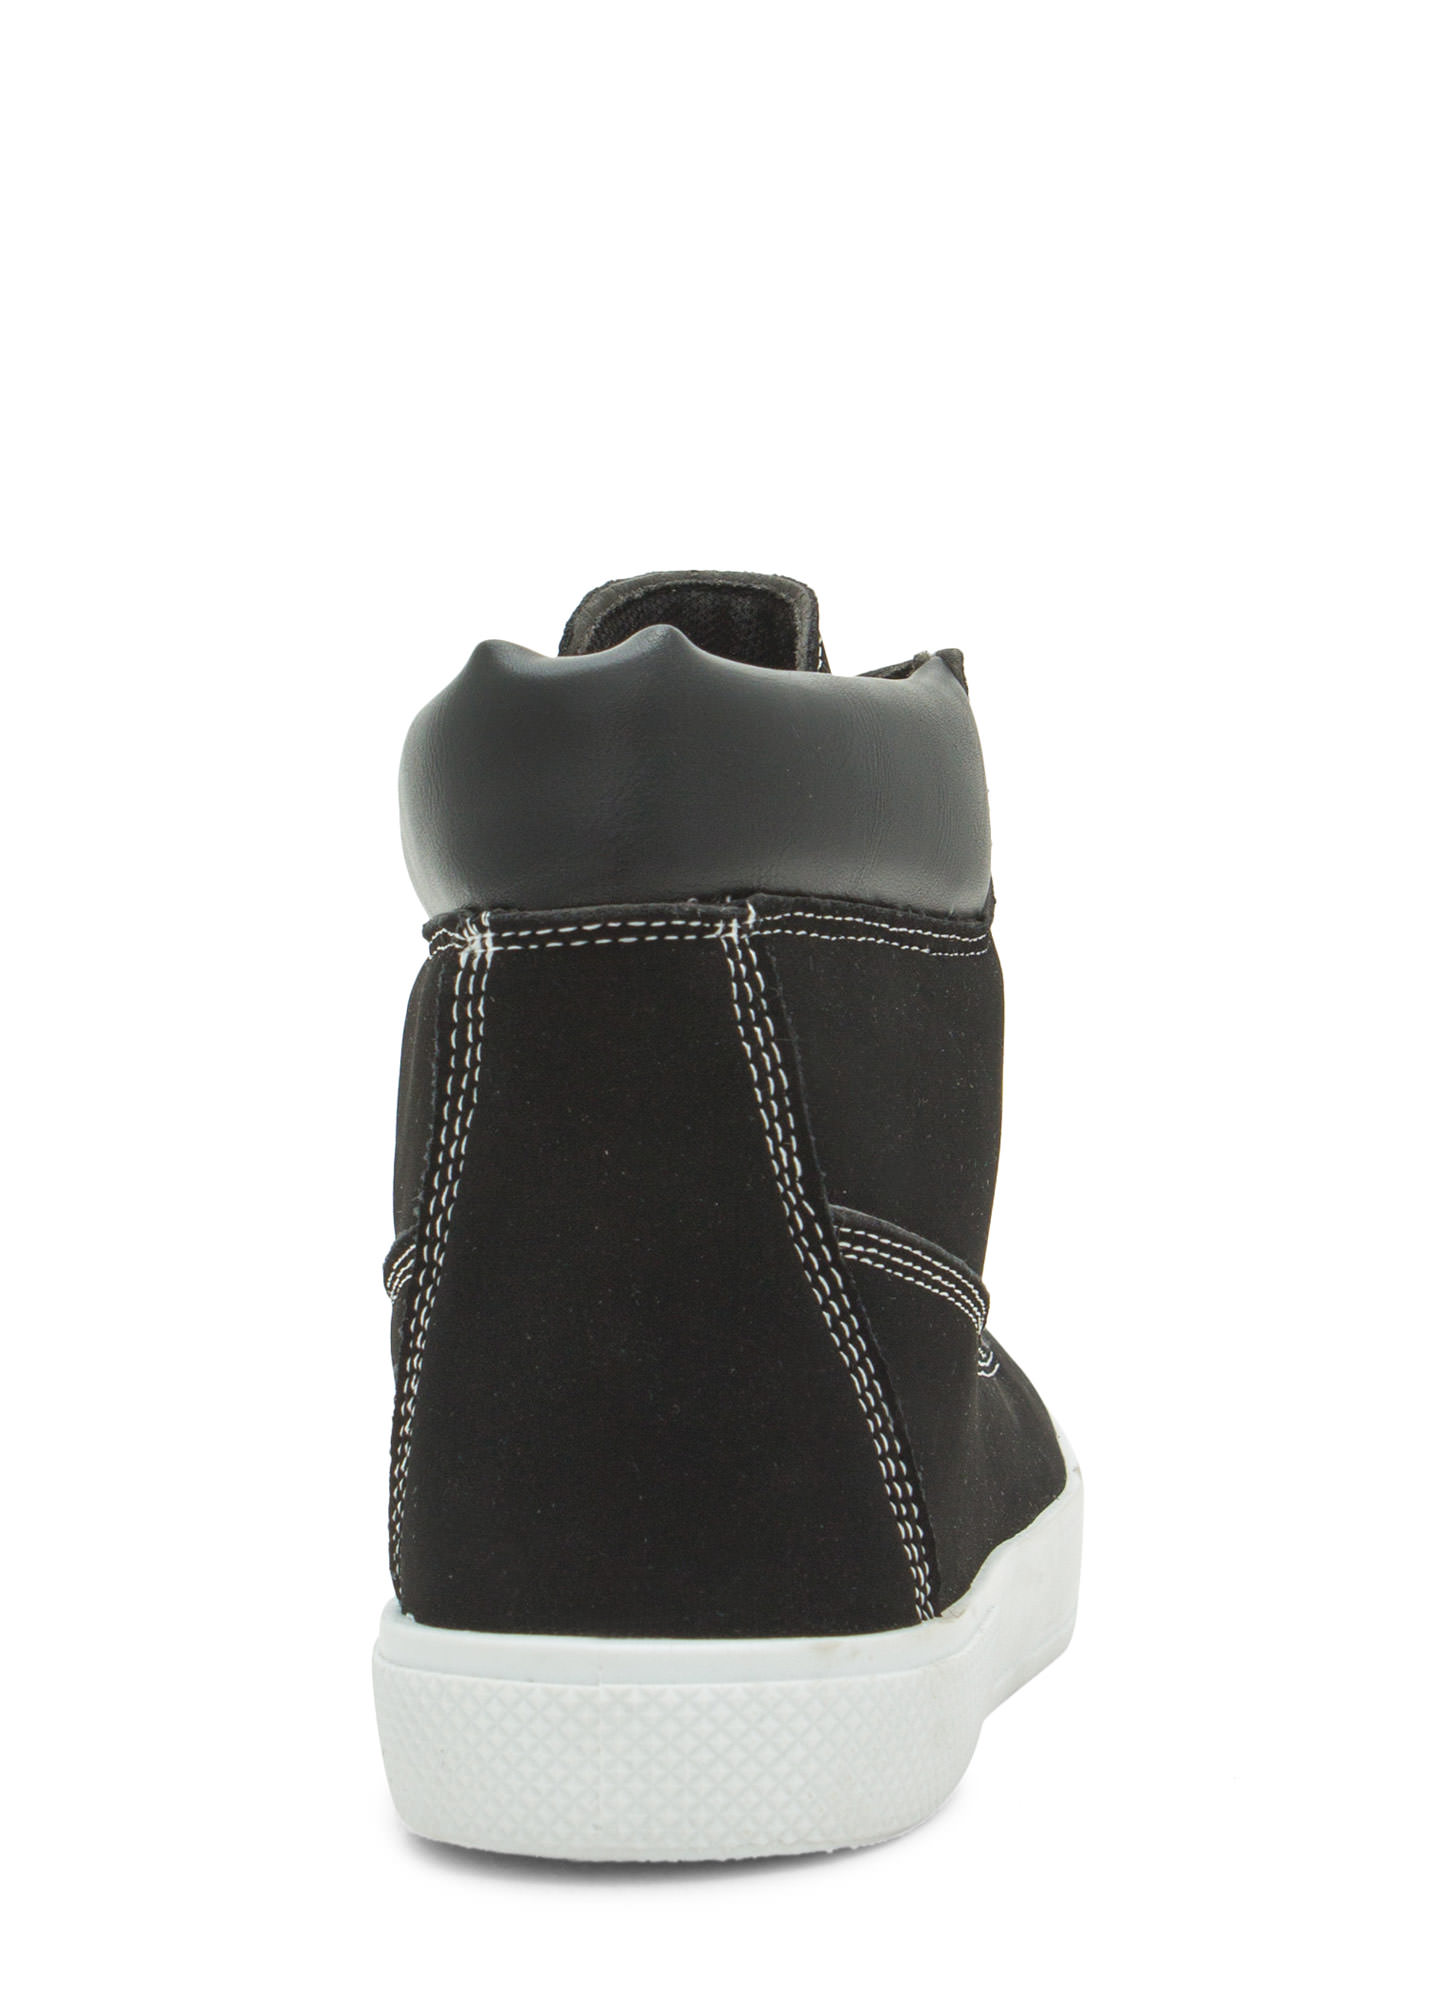 Daily Wear High Top Sneakers BLACK